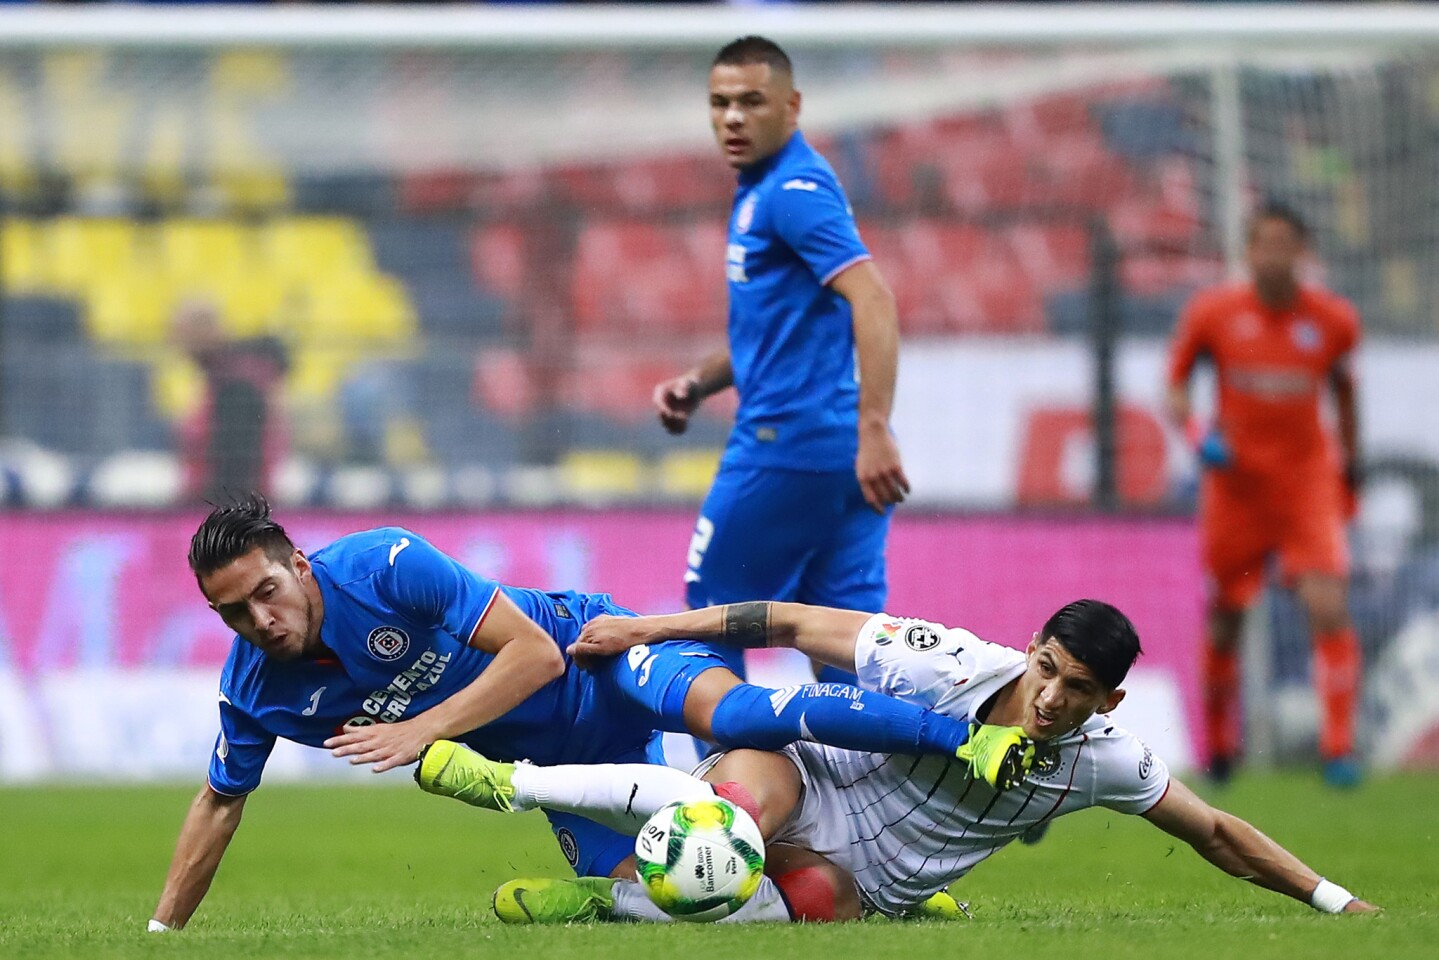 MEXICO CITY, MEXICO - JANUARY 12: Javier Salas #8 of Cruz Azul struggles for the ball with Alan Pulido #9 of Chivas during the 2nd round match between Cruz Azul and Chivas as part of the Torneo Clausura 2019 Liga MX at Azteca on January 12, 2019 in Mexico City, Mexico. (Photo by Hector Vivas/Getty Images) ** OUTS - ELSENT, FPG, CM - OUTS * NM, PH, VA if sourced by CT, LA or MoD **